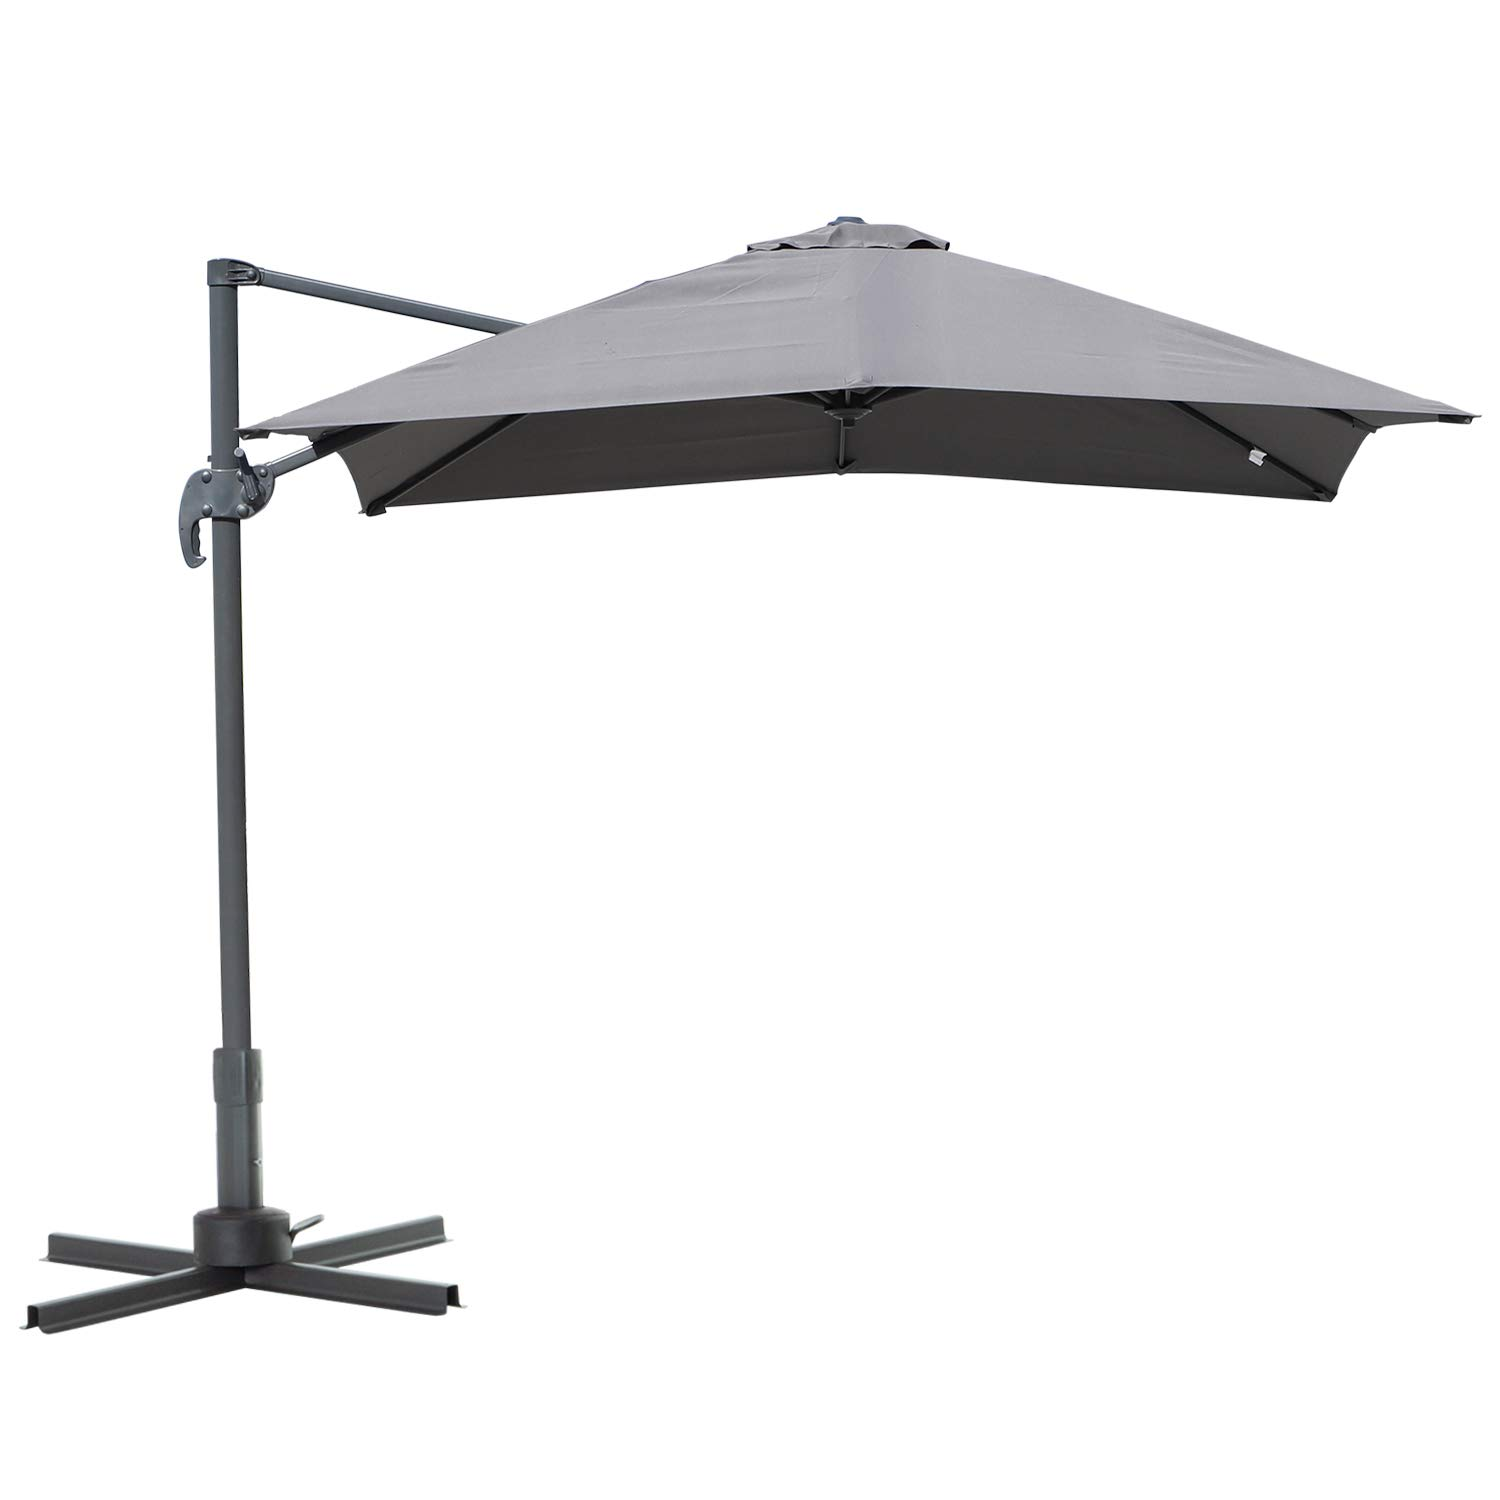 Outsunny 8' x 8' Square Offset 360 Cantilever Market Patio Umbrella with Cross Base -Grey